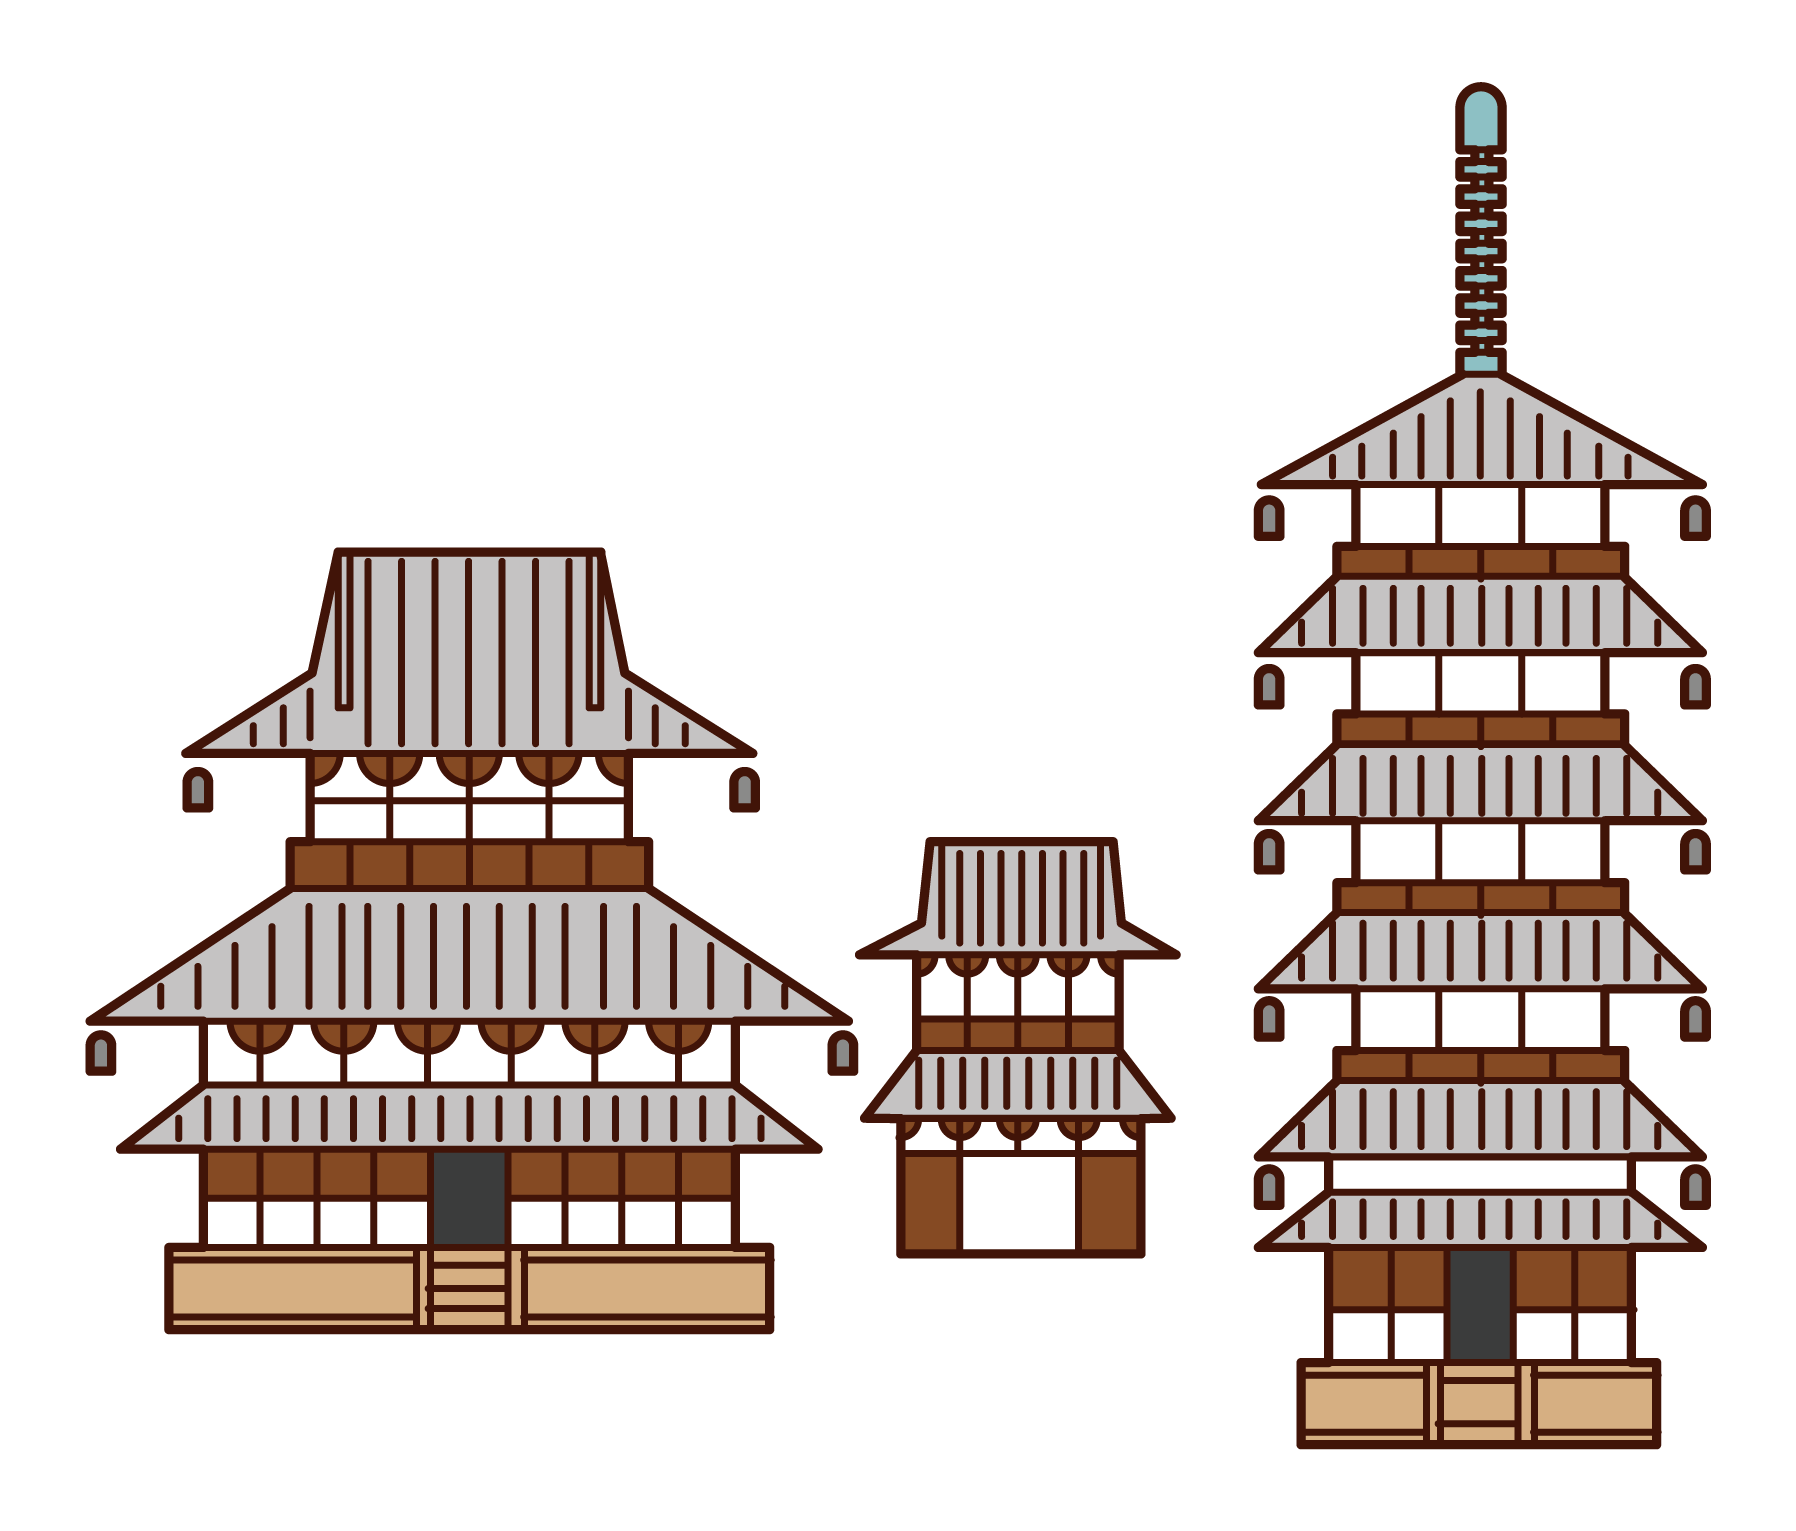 Illustration of Horyuji Temple